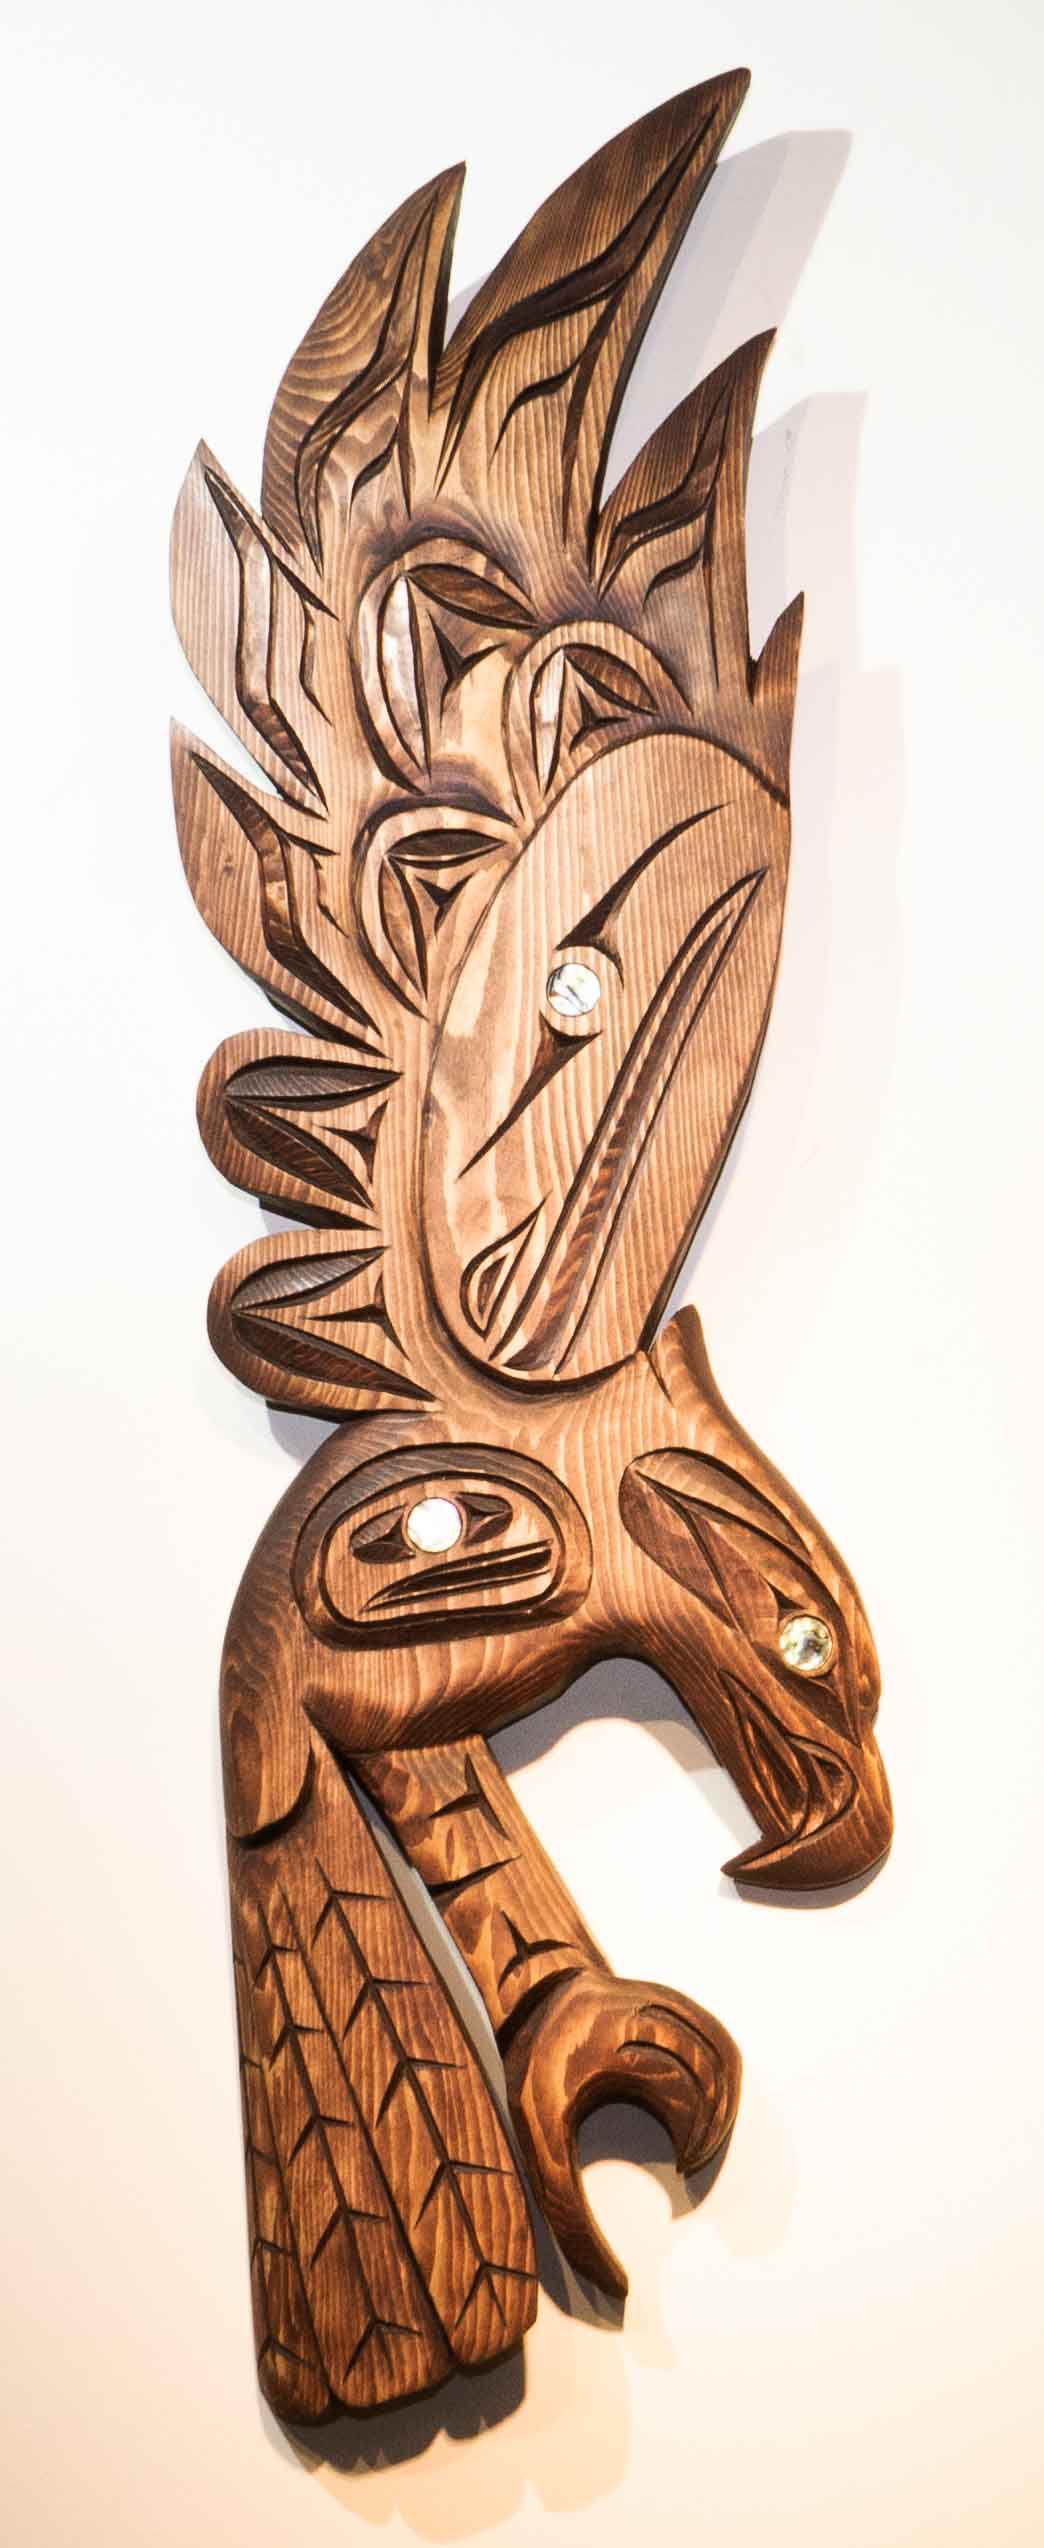 Our Native Land wood eagle sculpture by Brian Bob